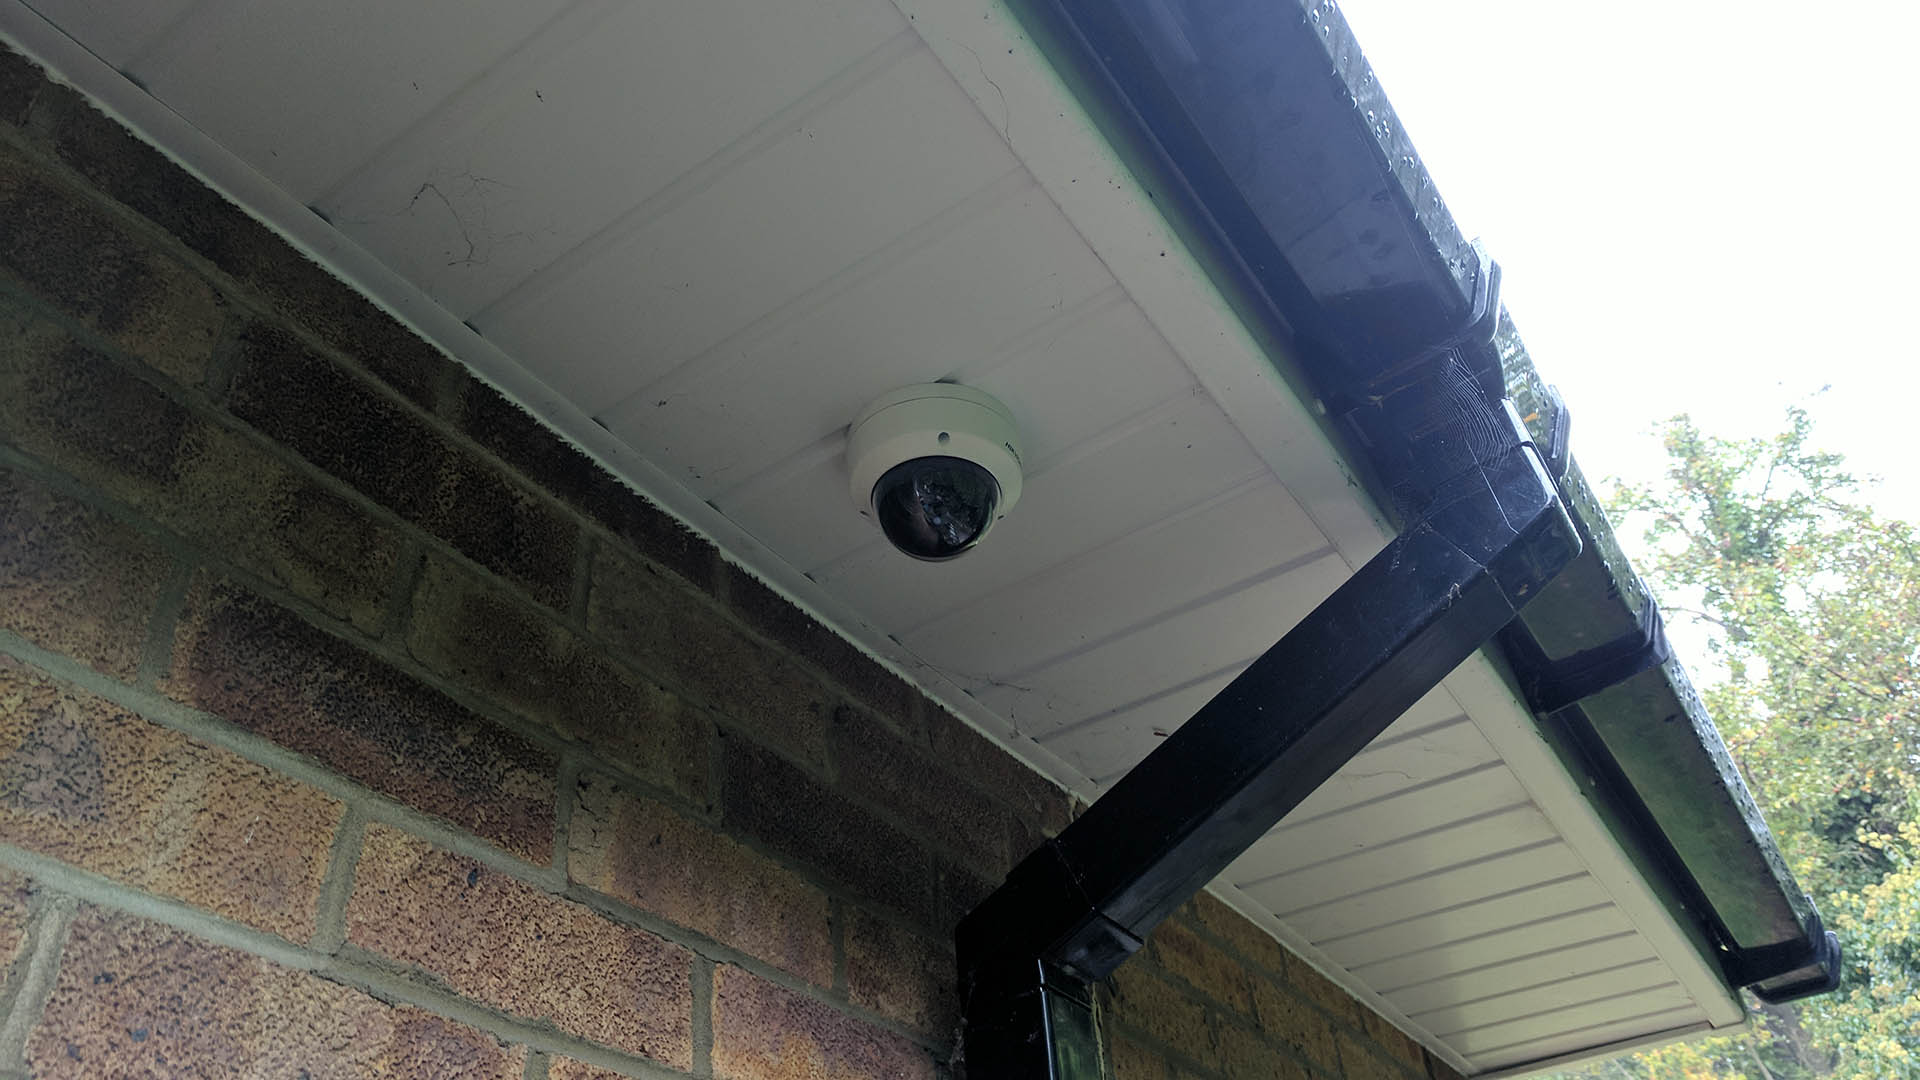 CCTV Installation in Danbury